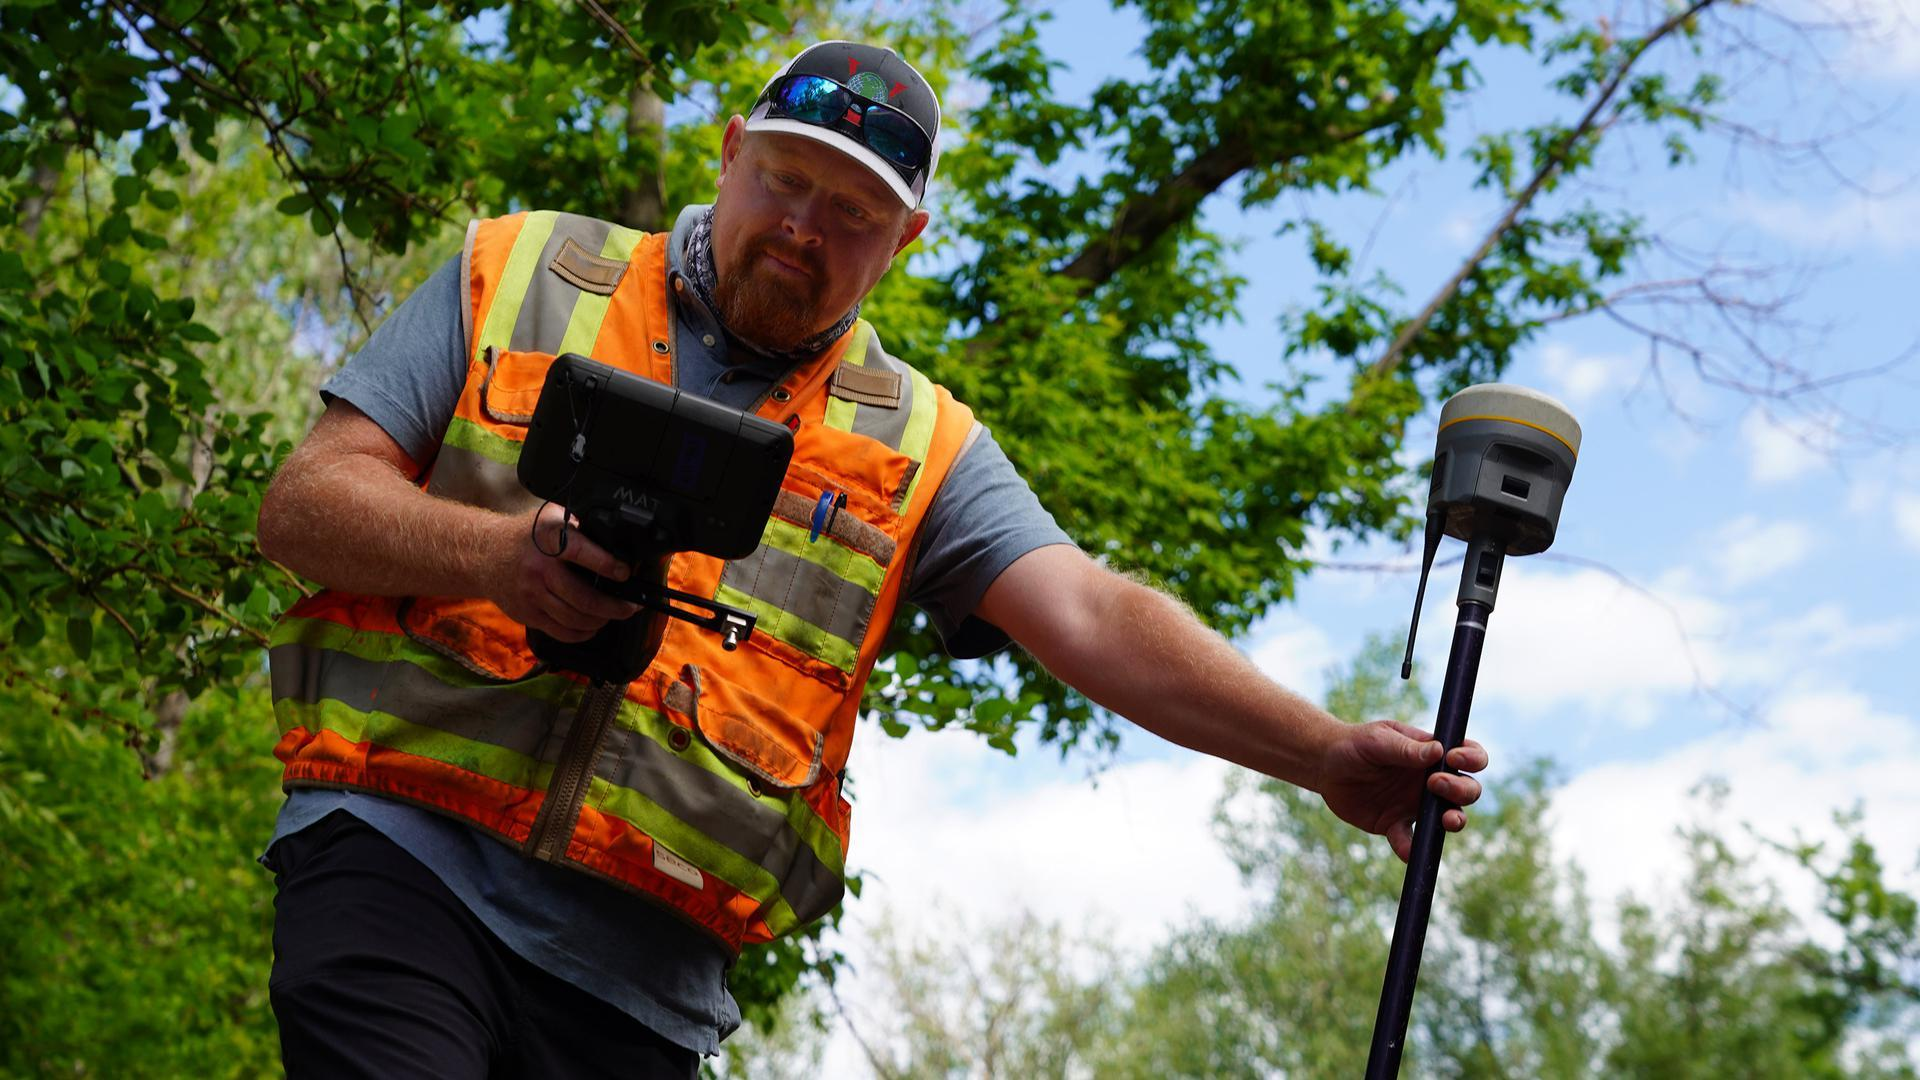 Surveyor using TSC7 with a Trimble R12i GNSS Receiver